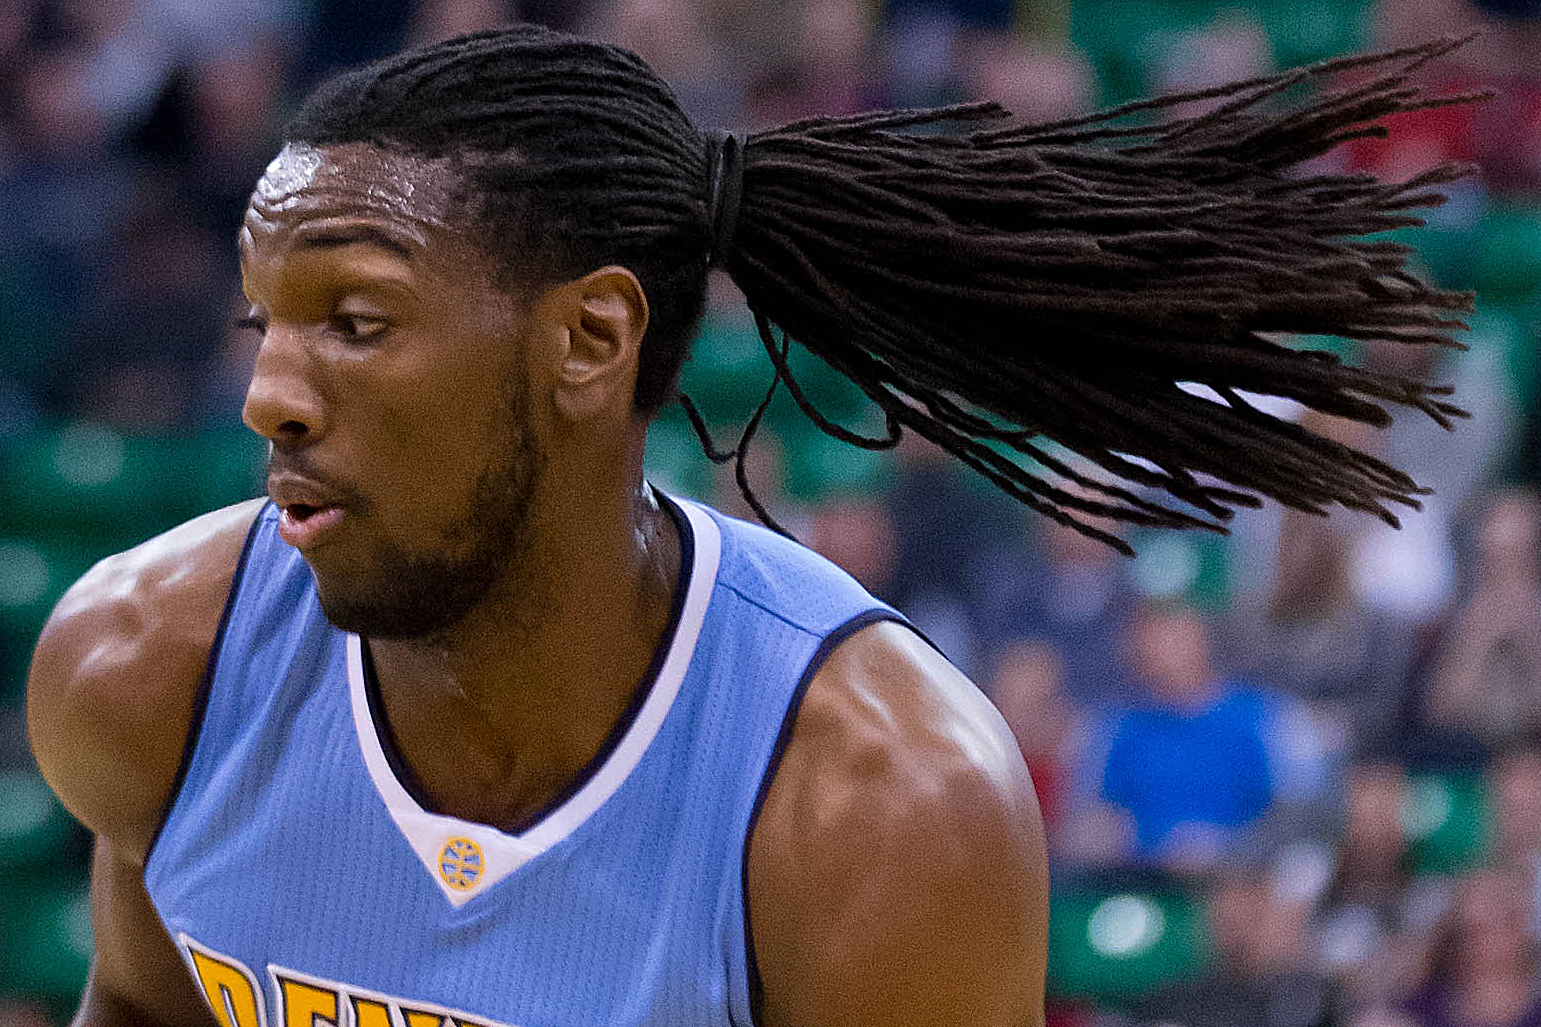 Denver Nuggets forward Kenneth Faried (35) drives toward the basket during the first half against the Utah Jazz at Vivint Smart Home Arena.